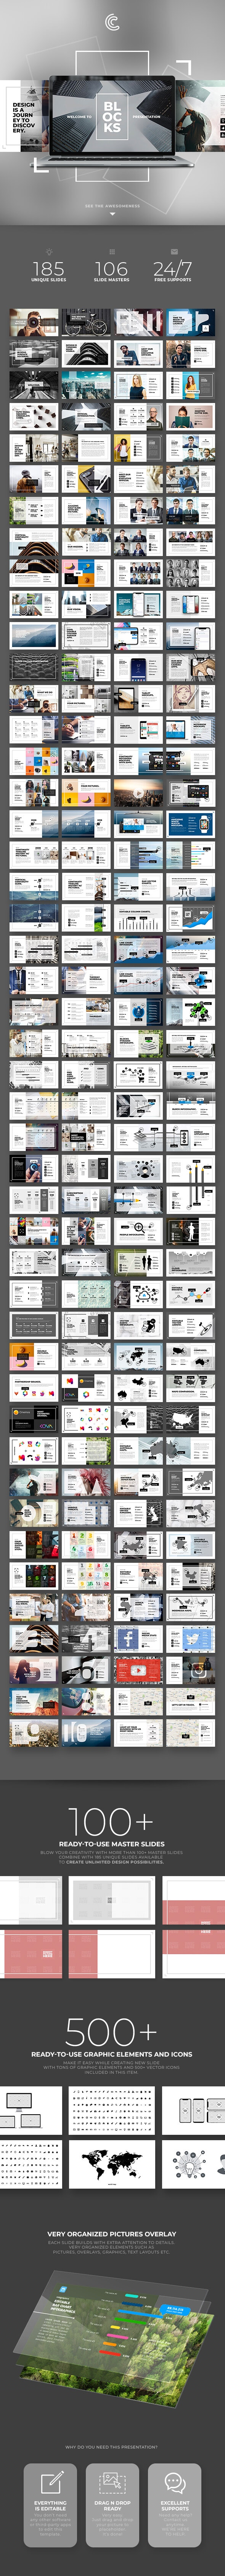 Blocks PowerPoint - PowerPoint Templates Presentation Templates